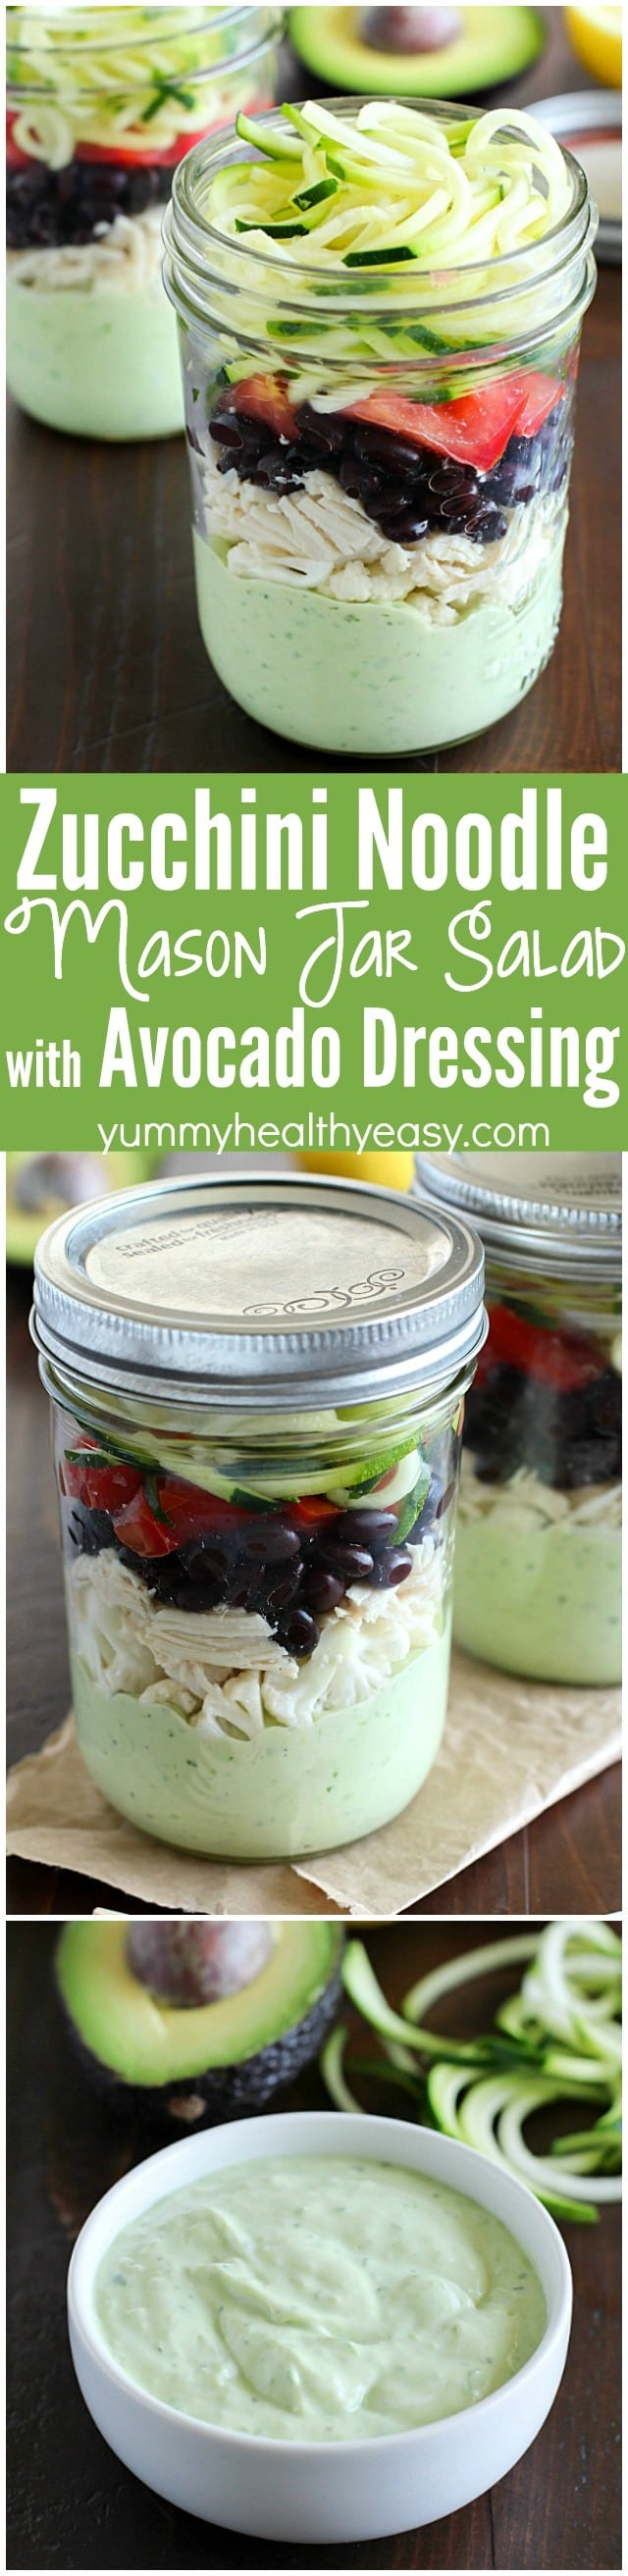 Avocado dressing (southwest style!) is nestled on the bottom of this delicious mason jar salad with zucchini noodles on the top and chicken, veggies and black beans tucked in the middle. A delicious and healthy low-carb, low-sugar lunch prepared ahead of time and eaten on-the-go! Plus a HUGE Blendtec Giveaway you won't want to miss!! AD